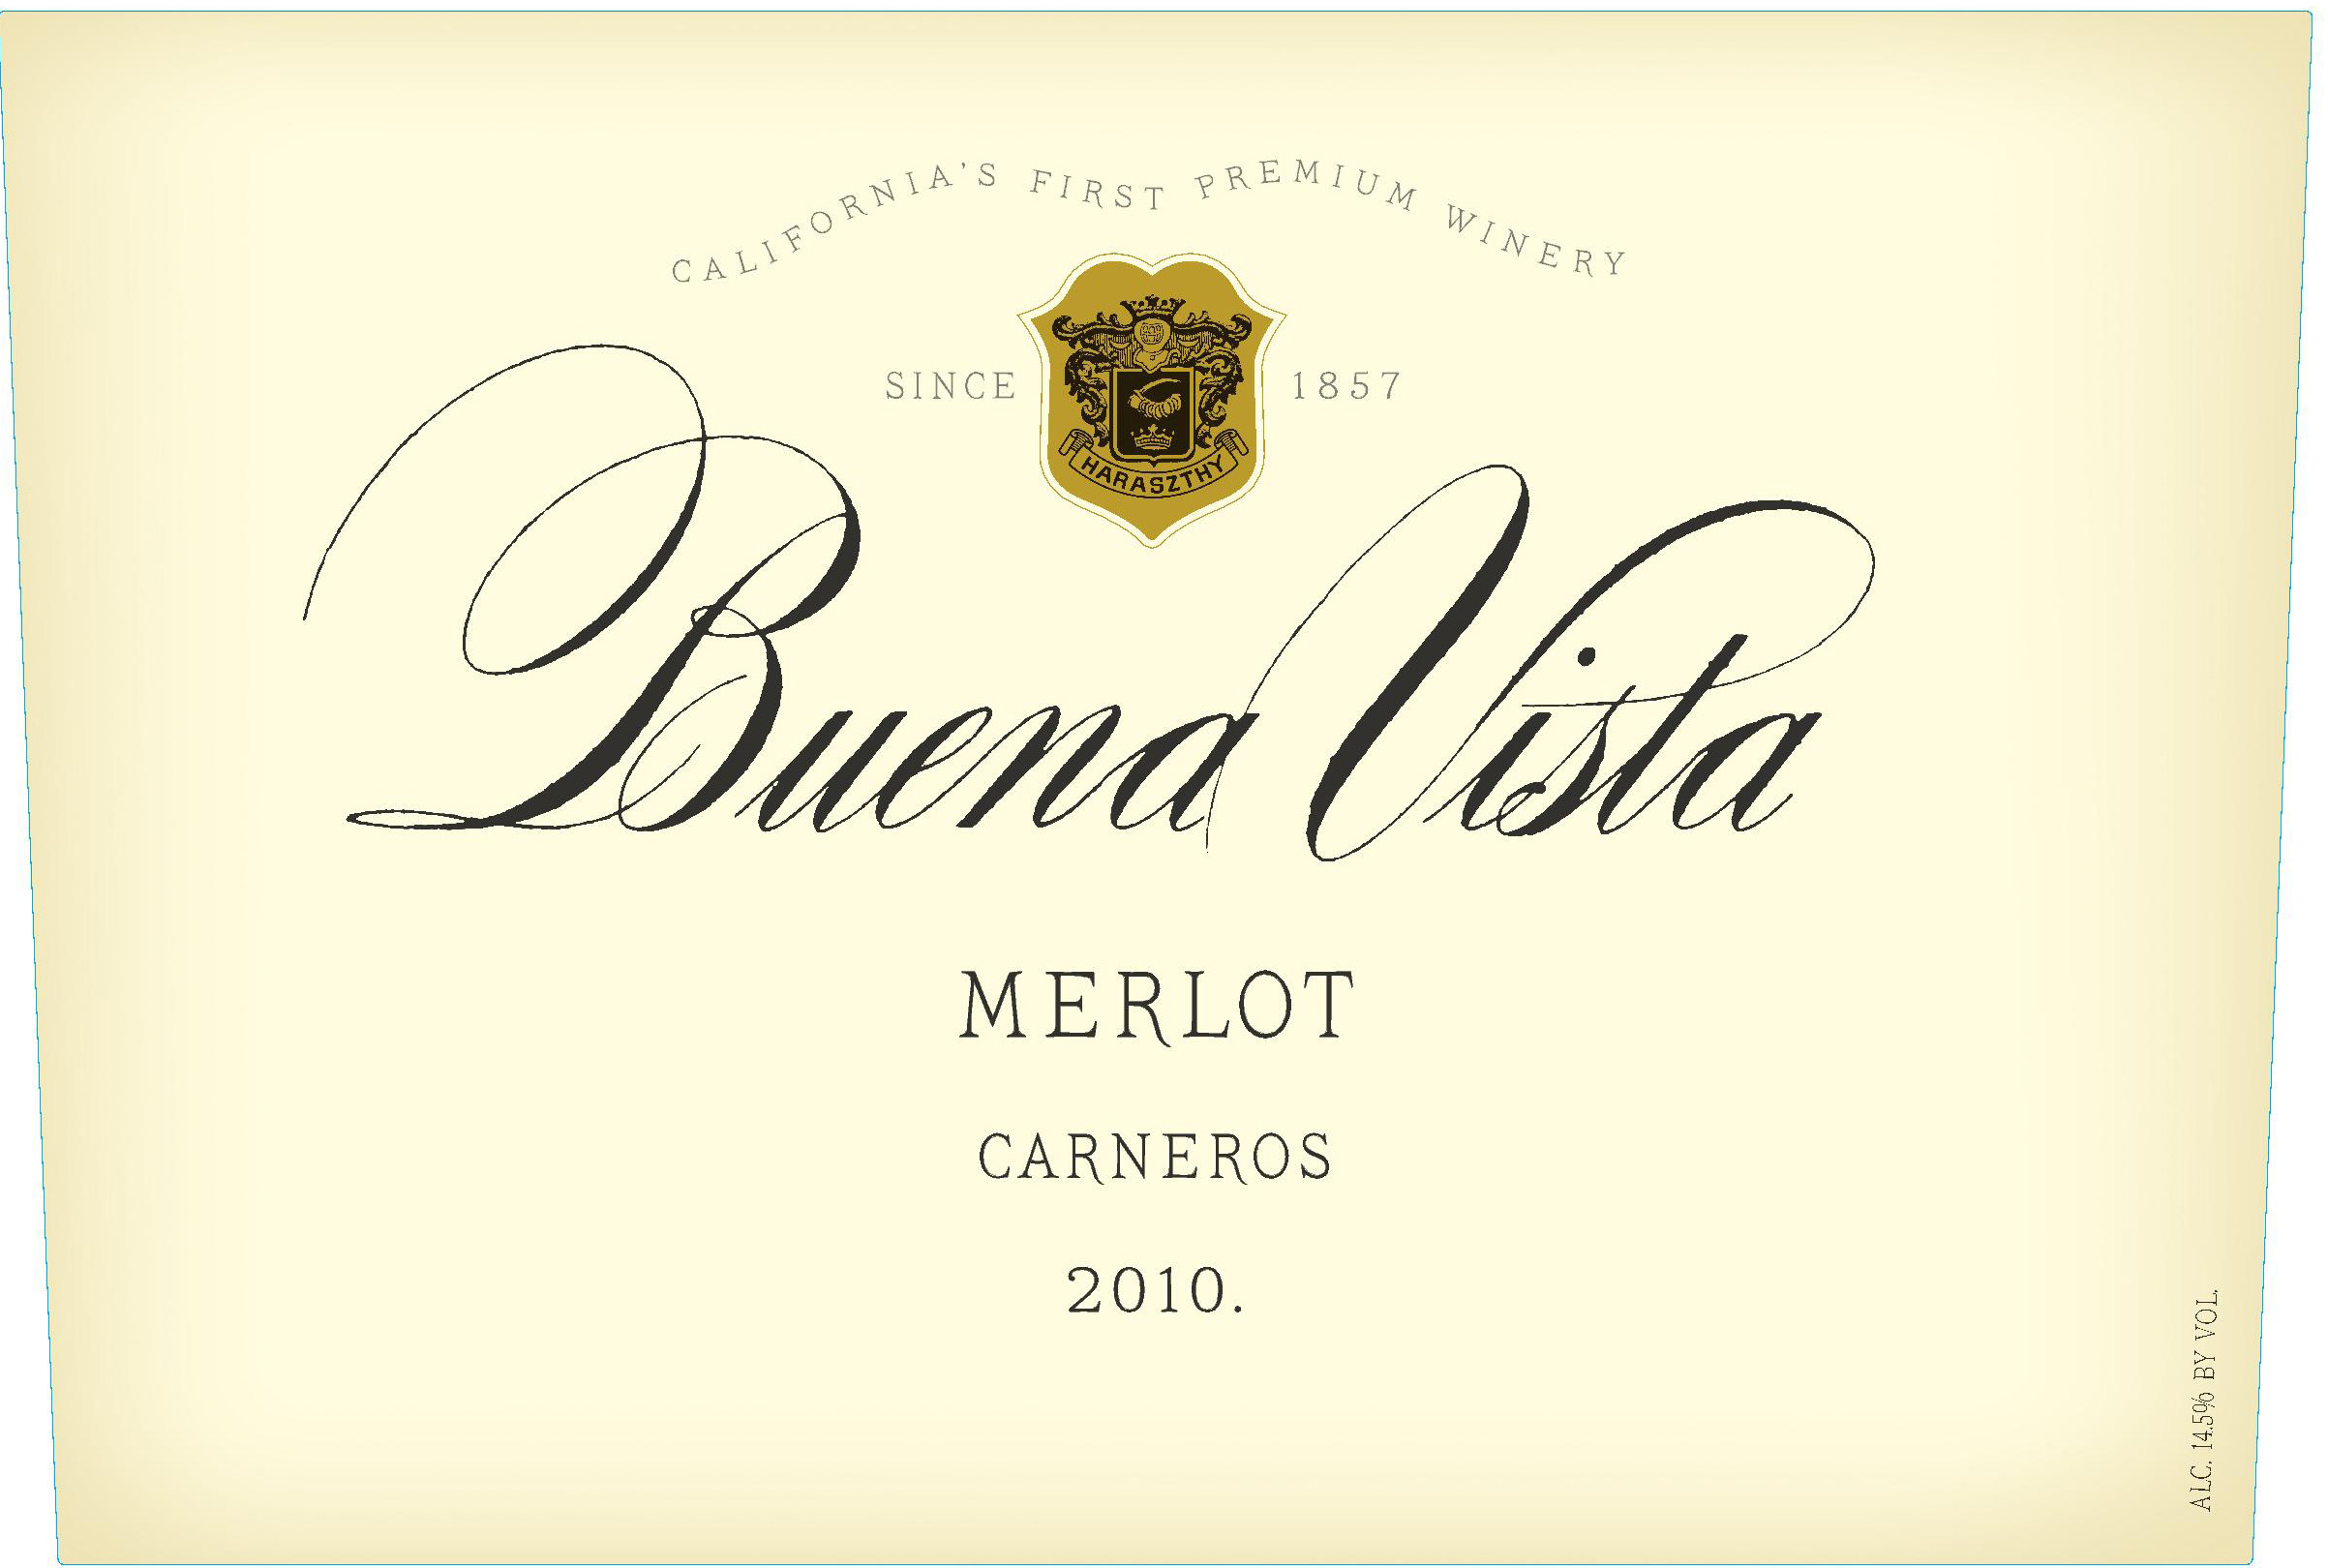 维斯塔卡纳罗斯梅洛干红Buena Vista Winery Carneros Merlot